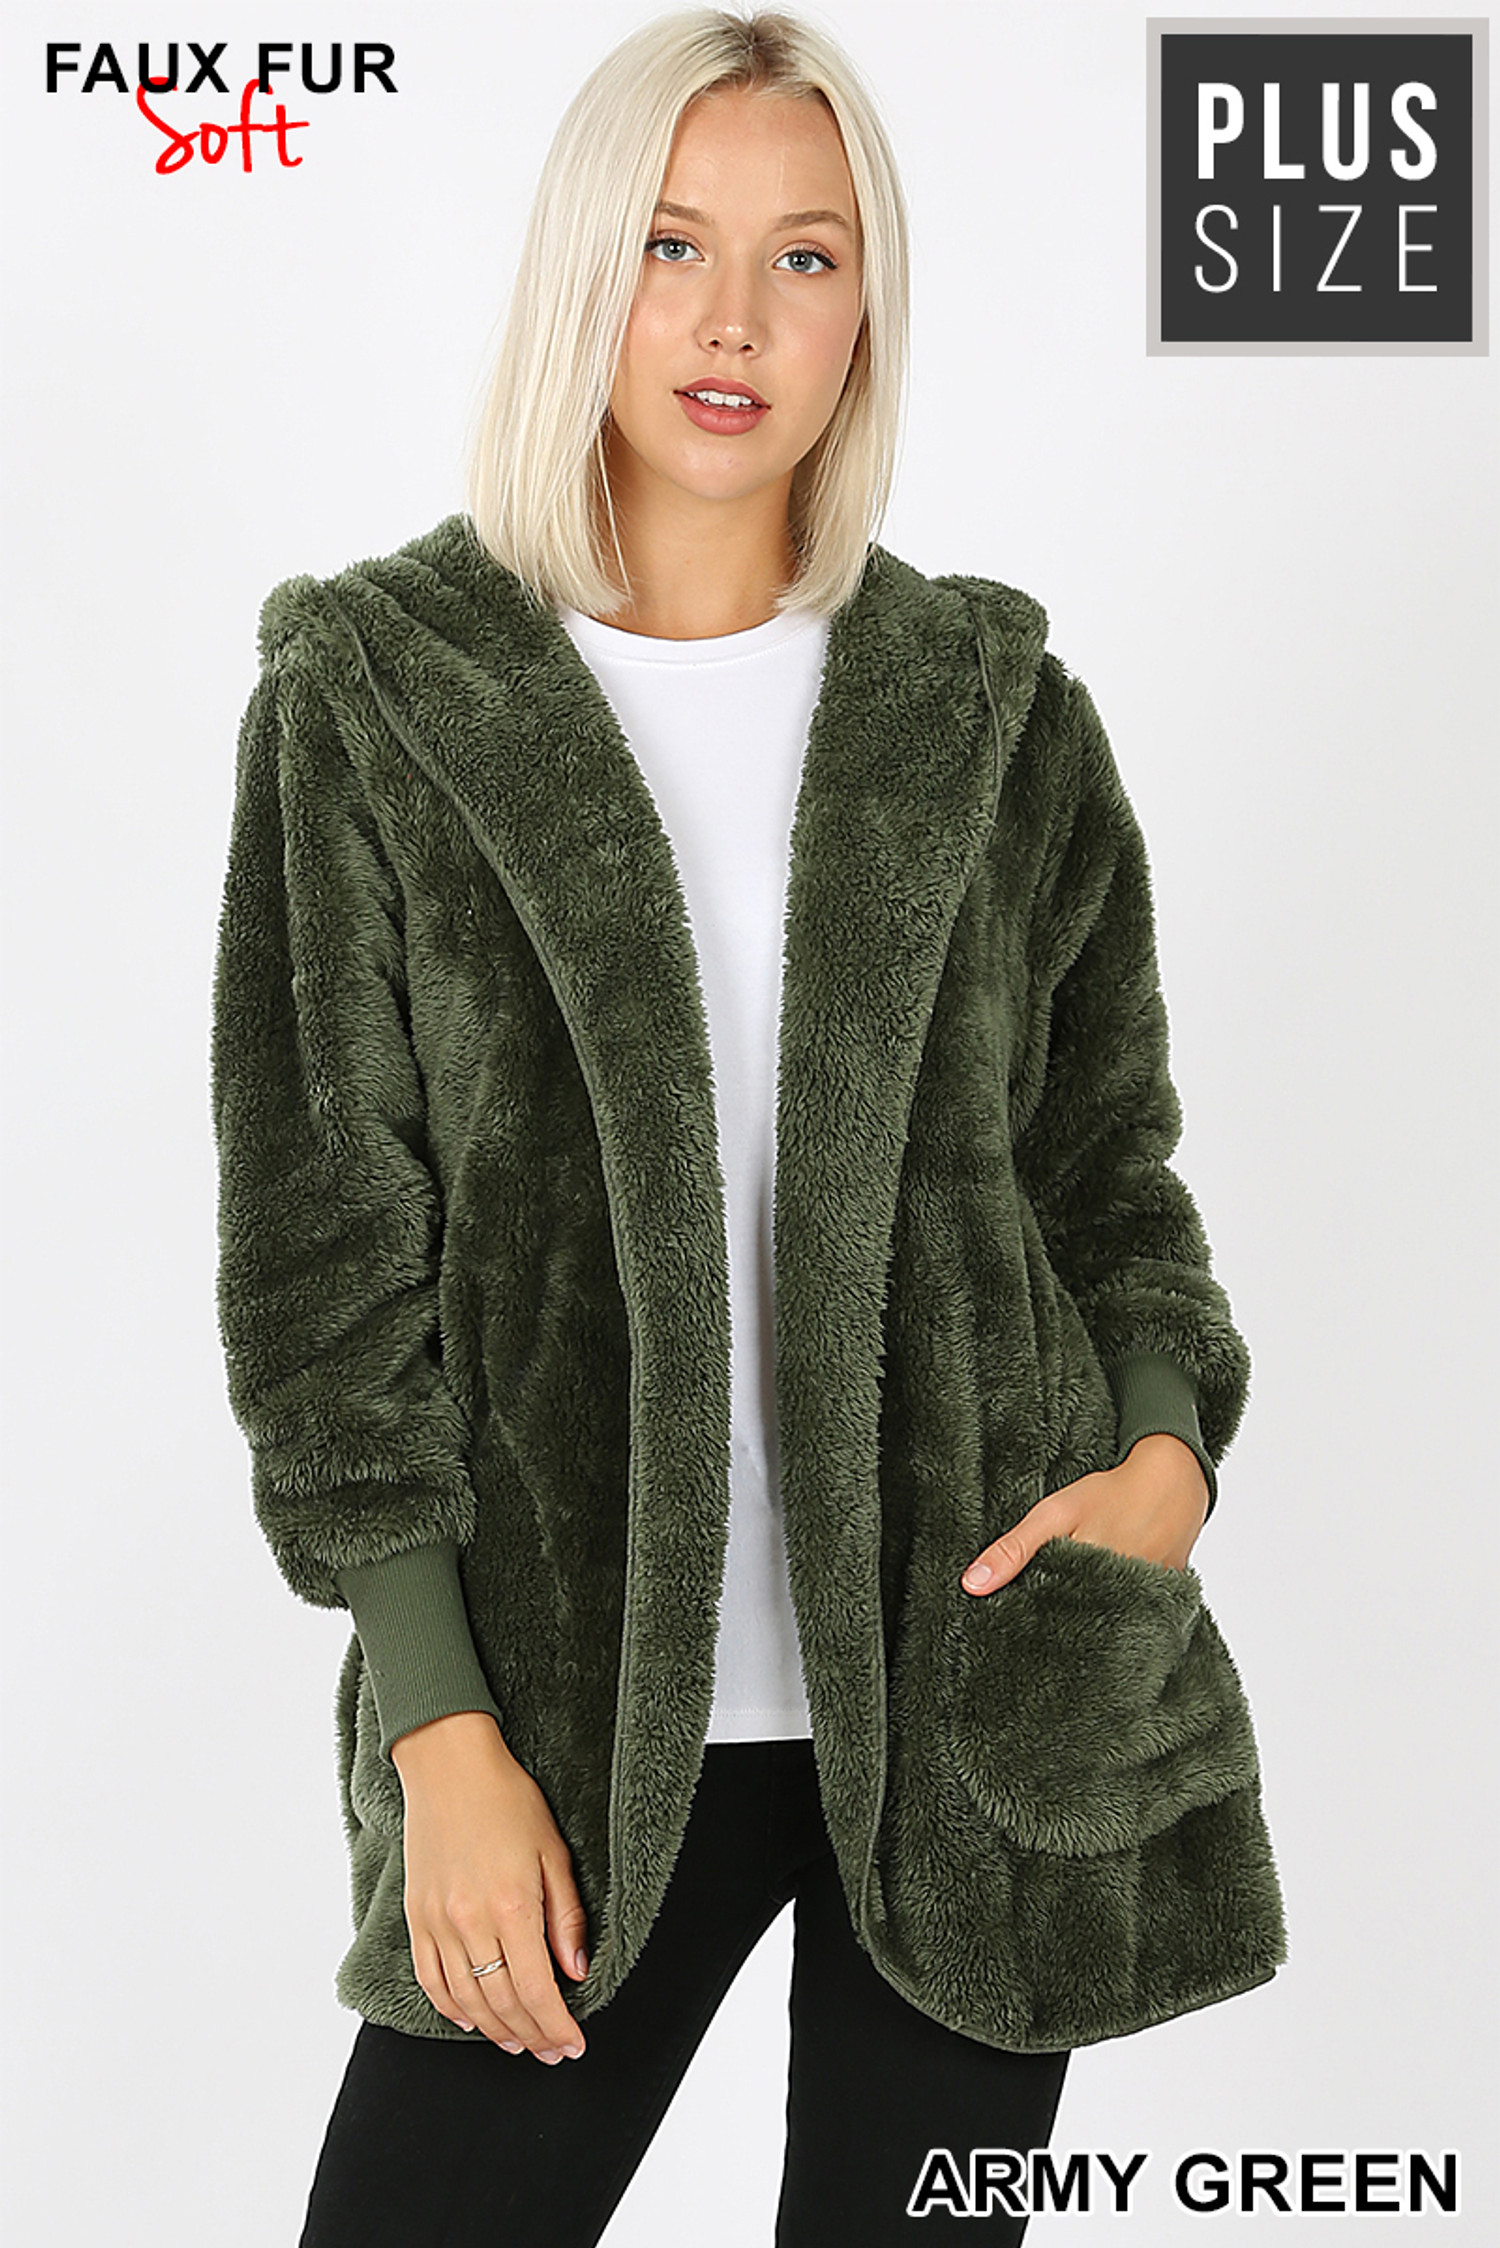 Front Image of Army Green Faux Fur Hooded Cocoon Plus Size Jacket with Pockets